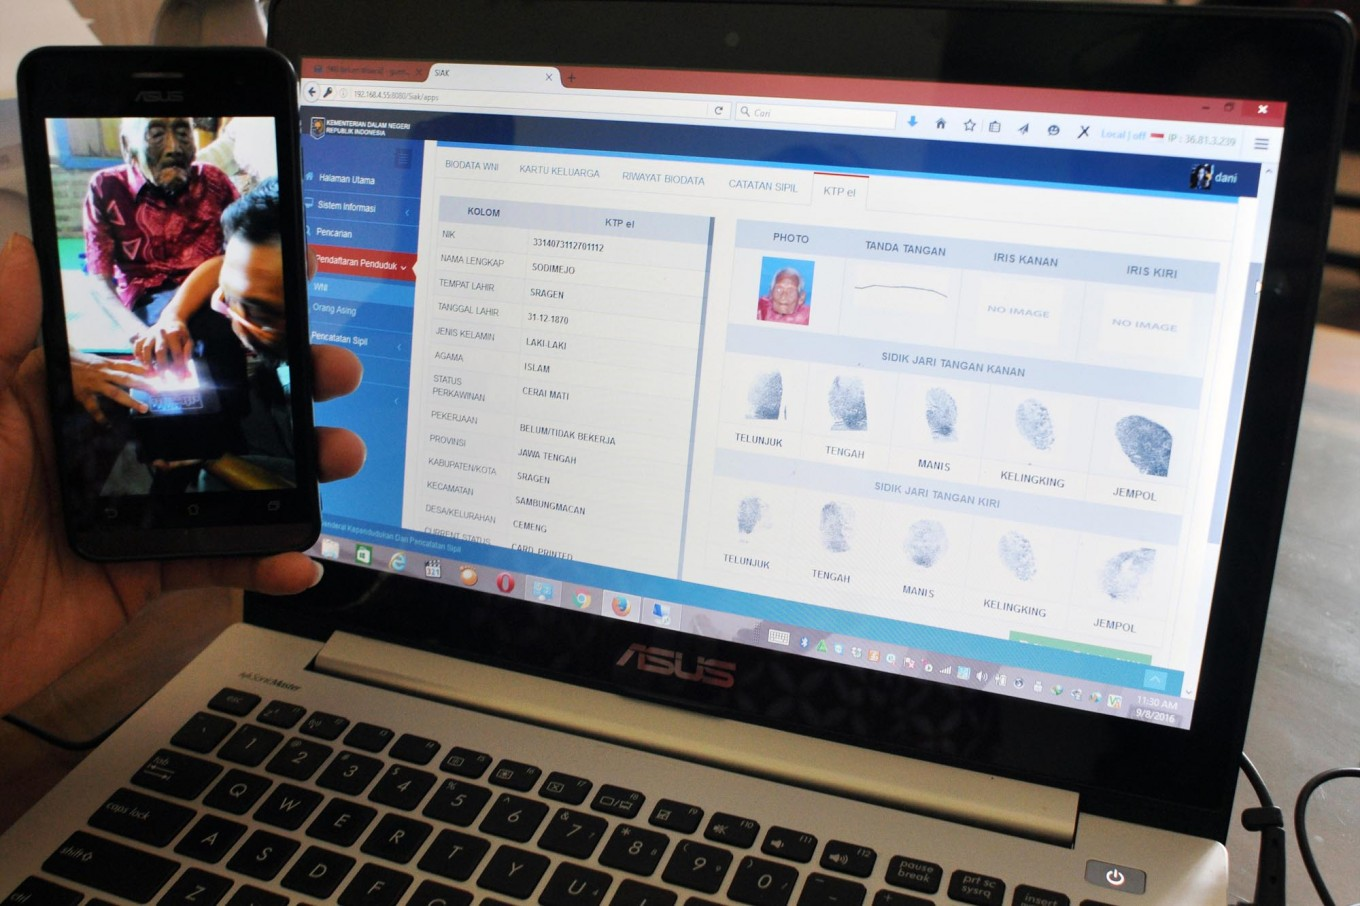 An official of the Sragen Population and Civil Registration Agency, Central Java, shows the e-ID of Sodimejo known as Mbah [grandpa] Jo Gotho on Sept. 8, 2016. The files record that Mbah Jo Gotho was born on Dec. 31, 1871. JP/Magnus Hendratmo